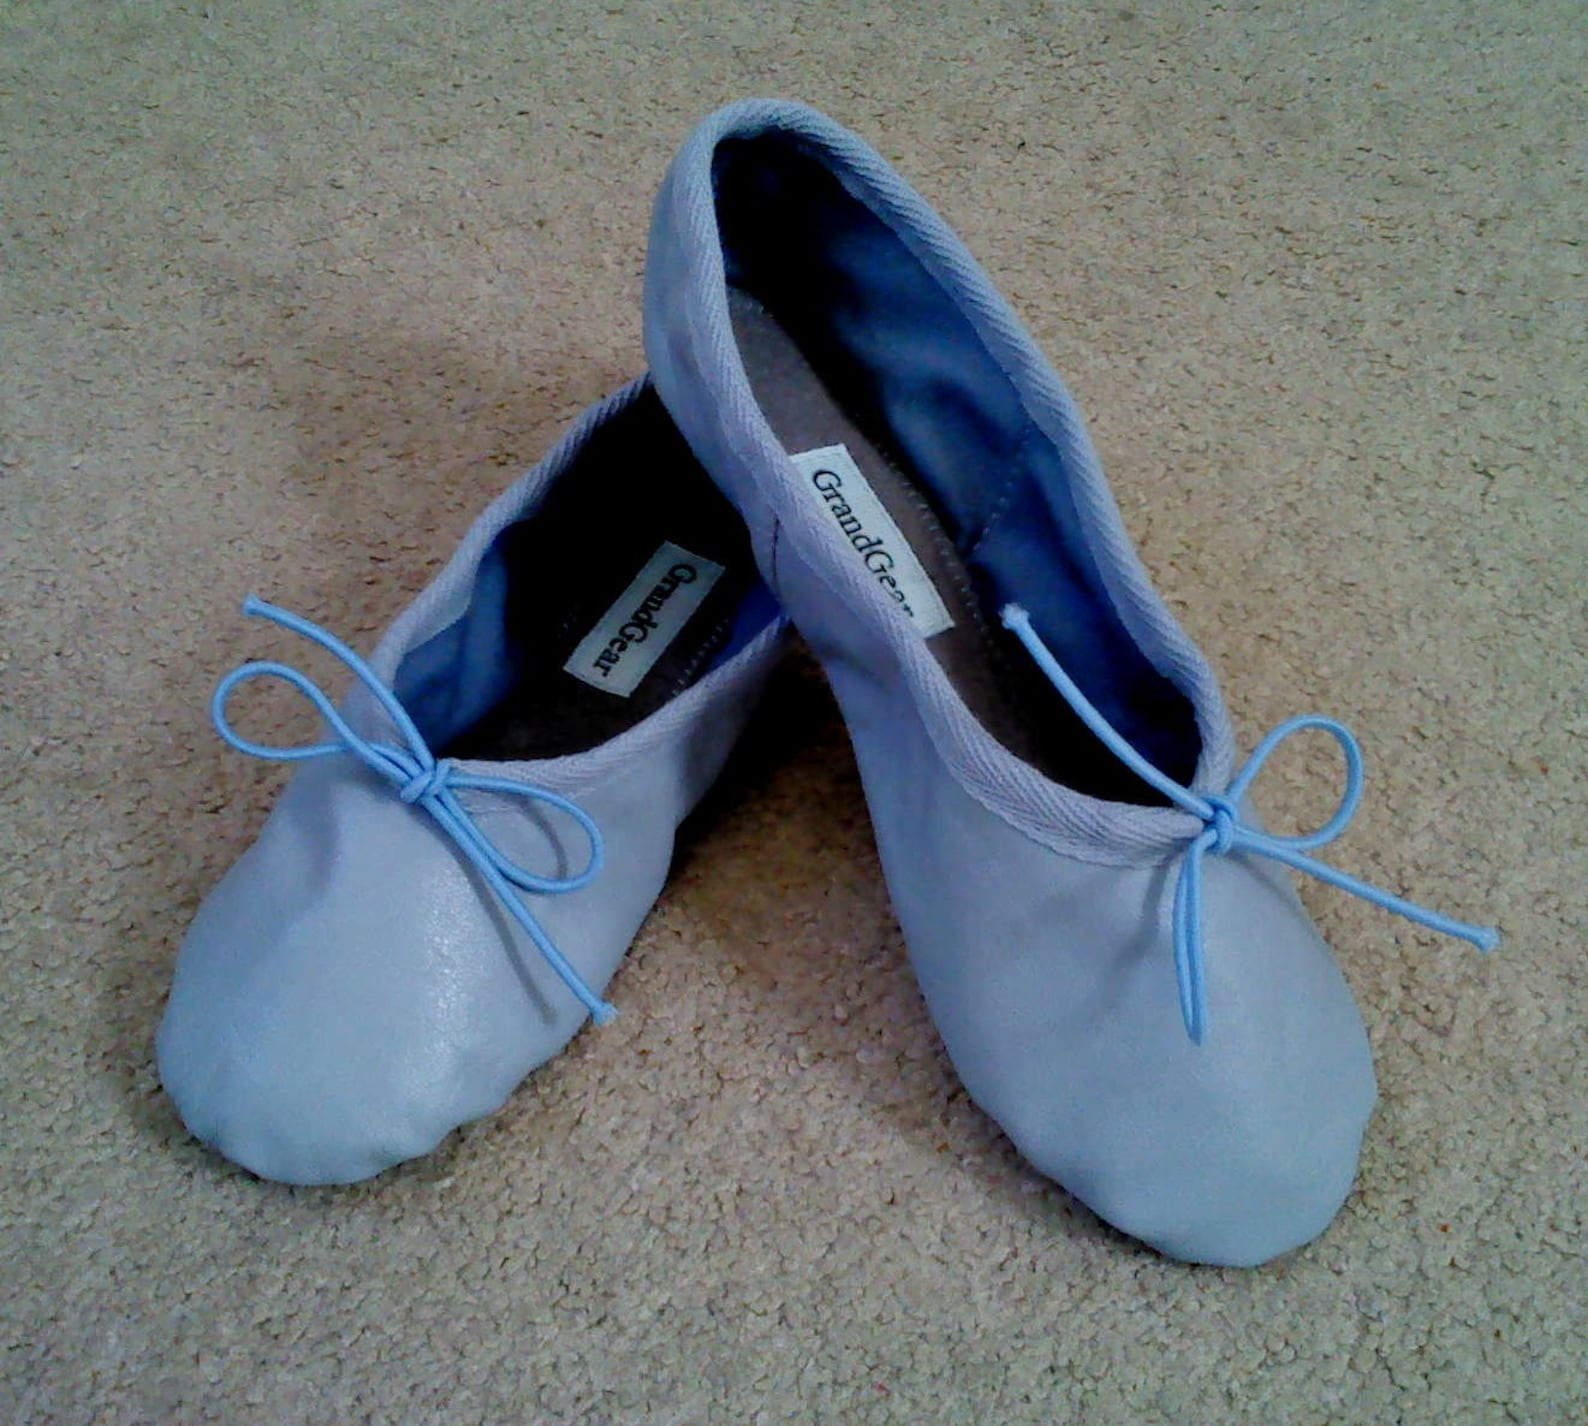 jet blue leather ballet shoes - full sole - adult sizes